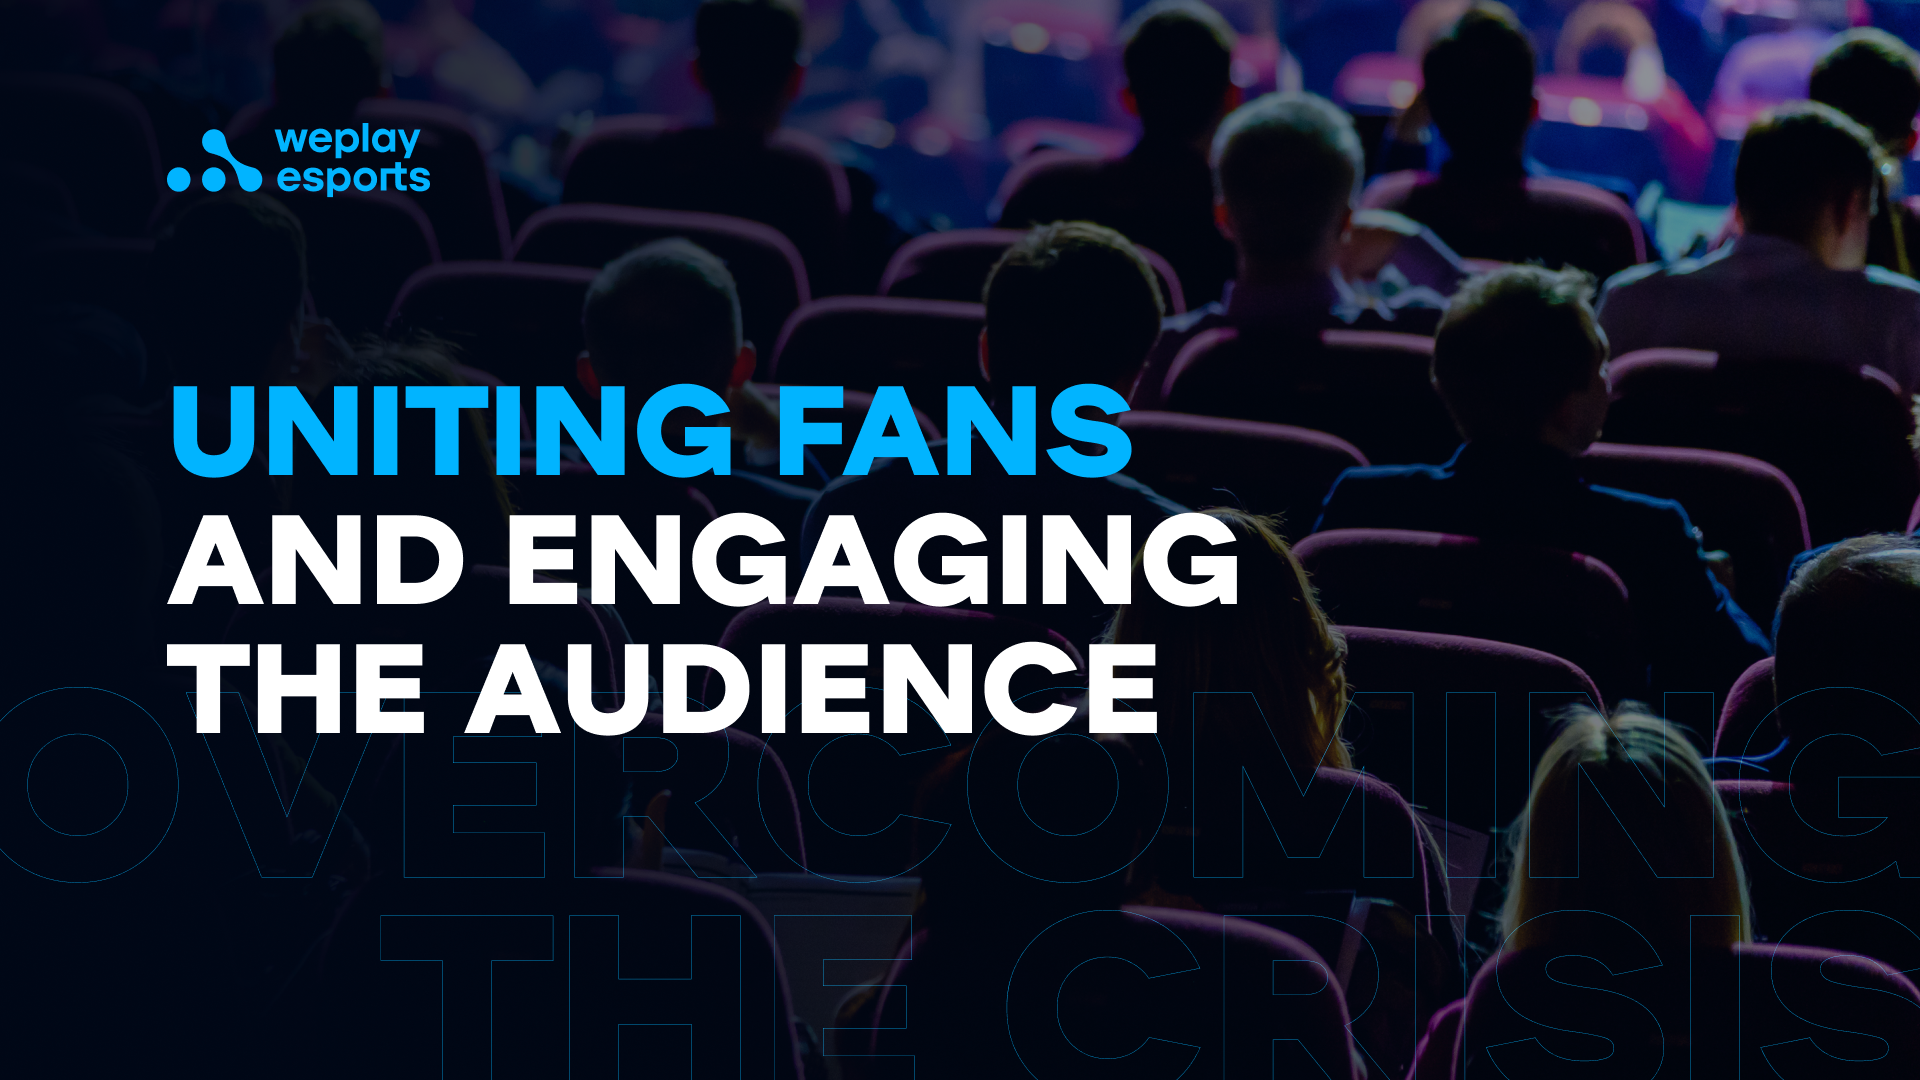 Uniting fans and engaging the audience